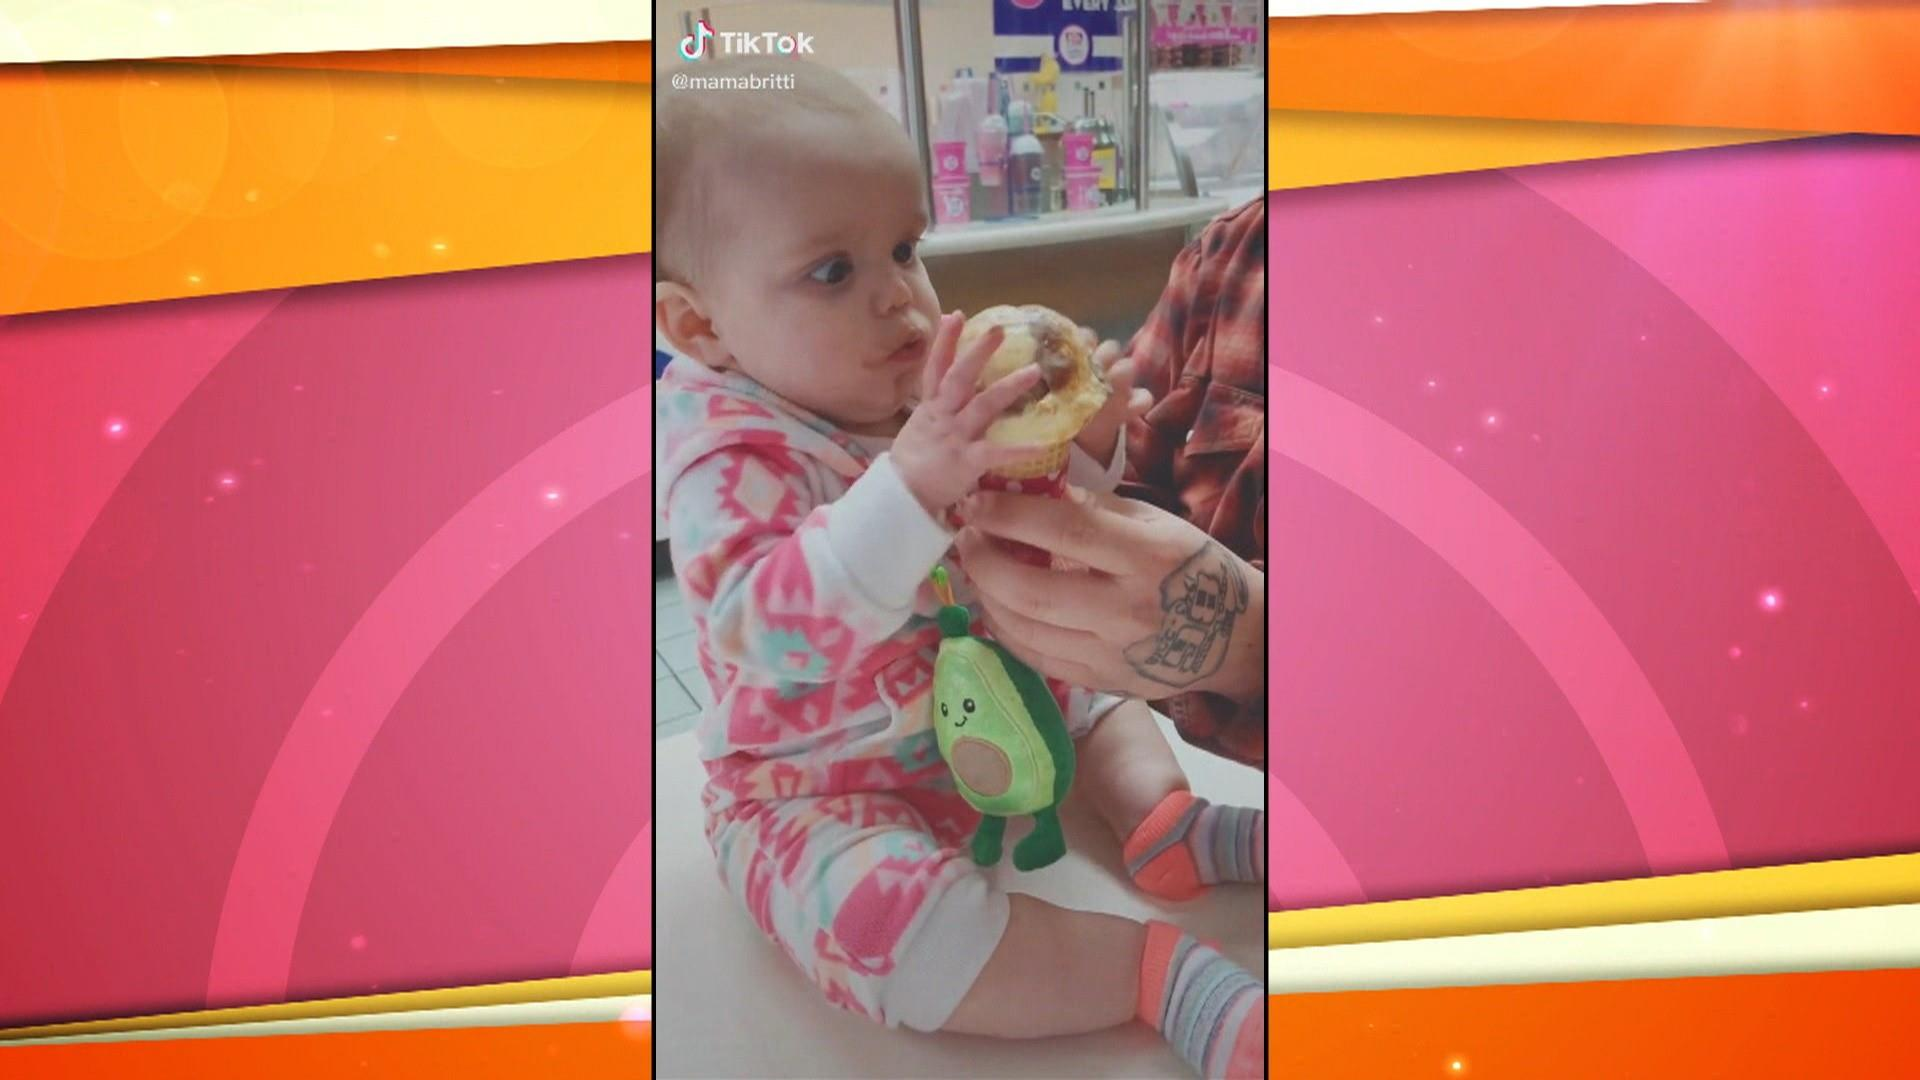 Watch how this 9-month-old girl reacts to her first taste of ice cream